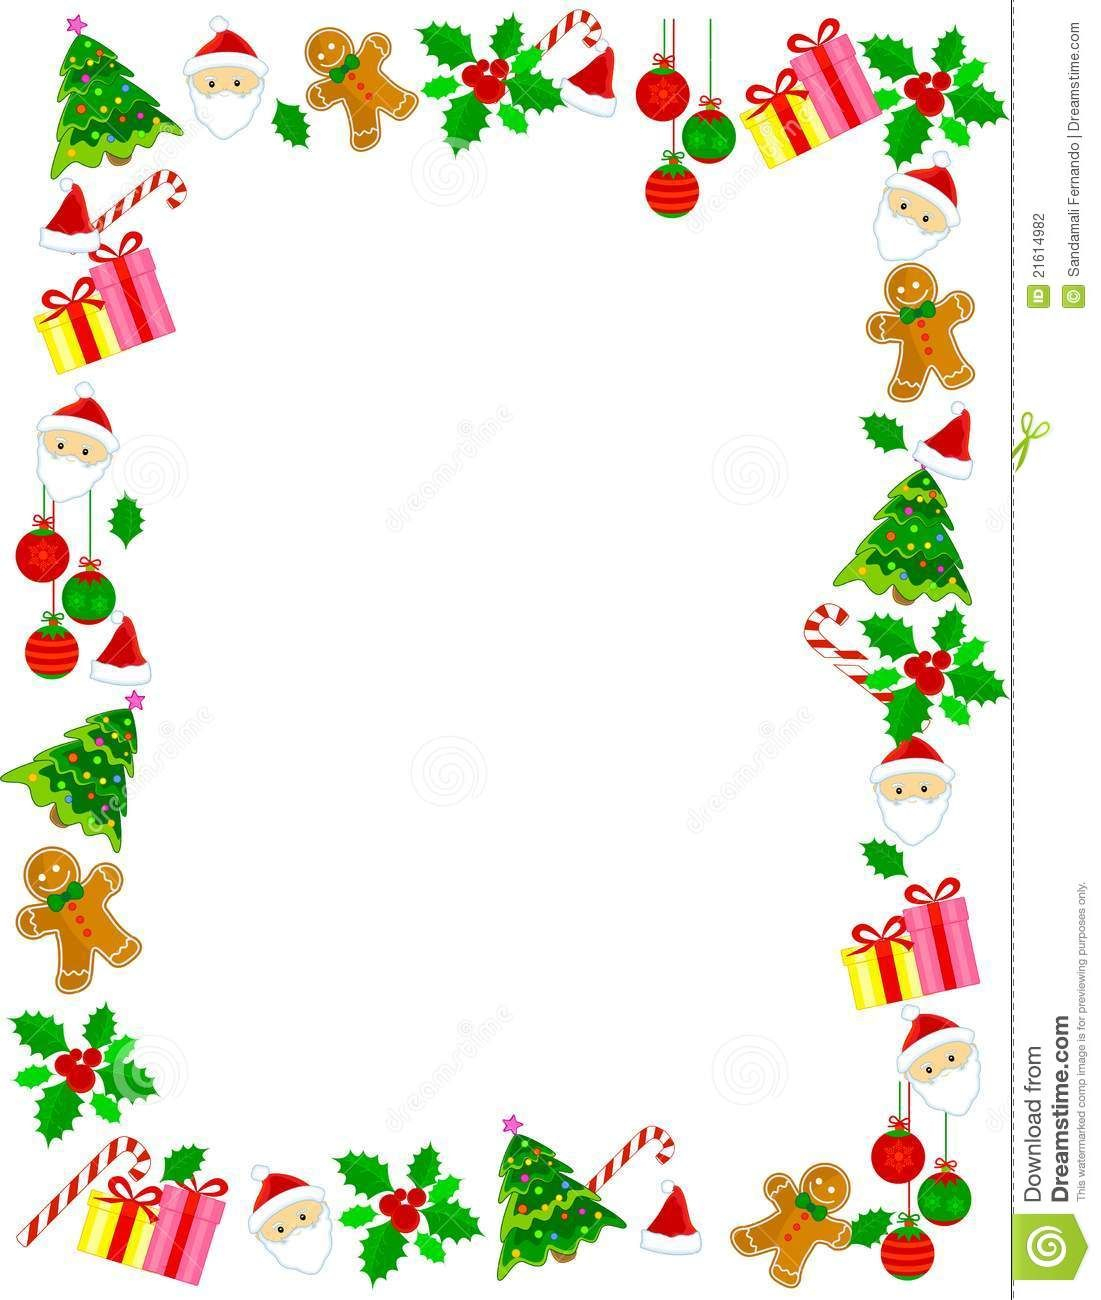 Christmas Border / Frame - Download From Over 50 Million High - Free Printable Christmas Frames And Borders